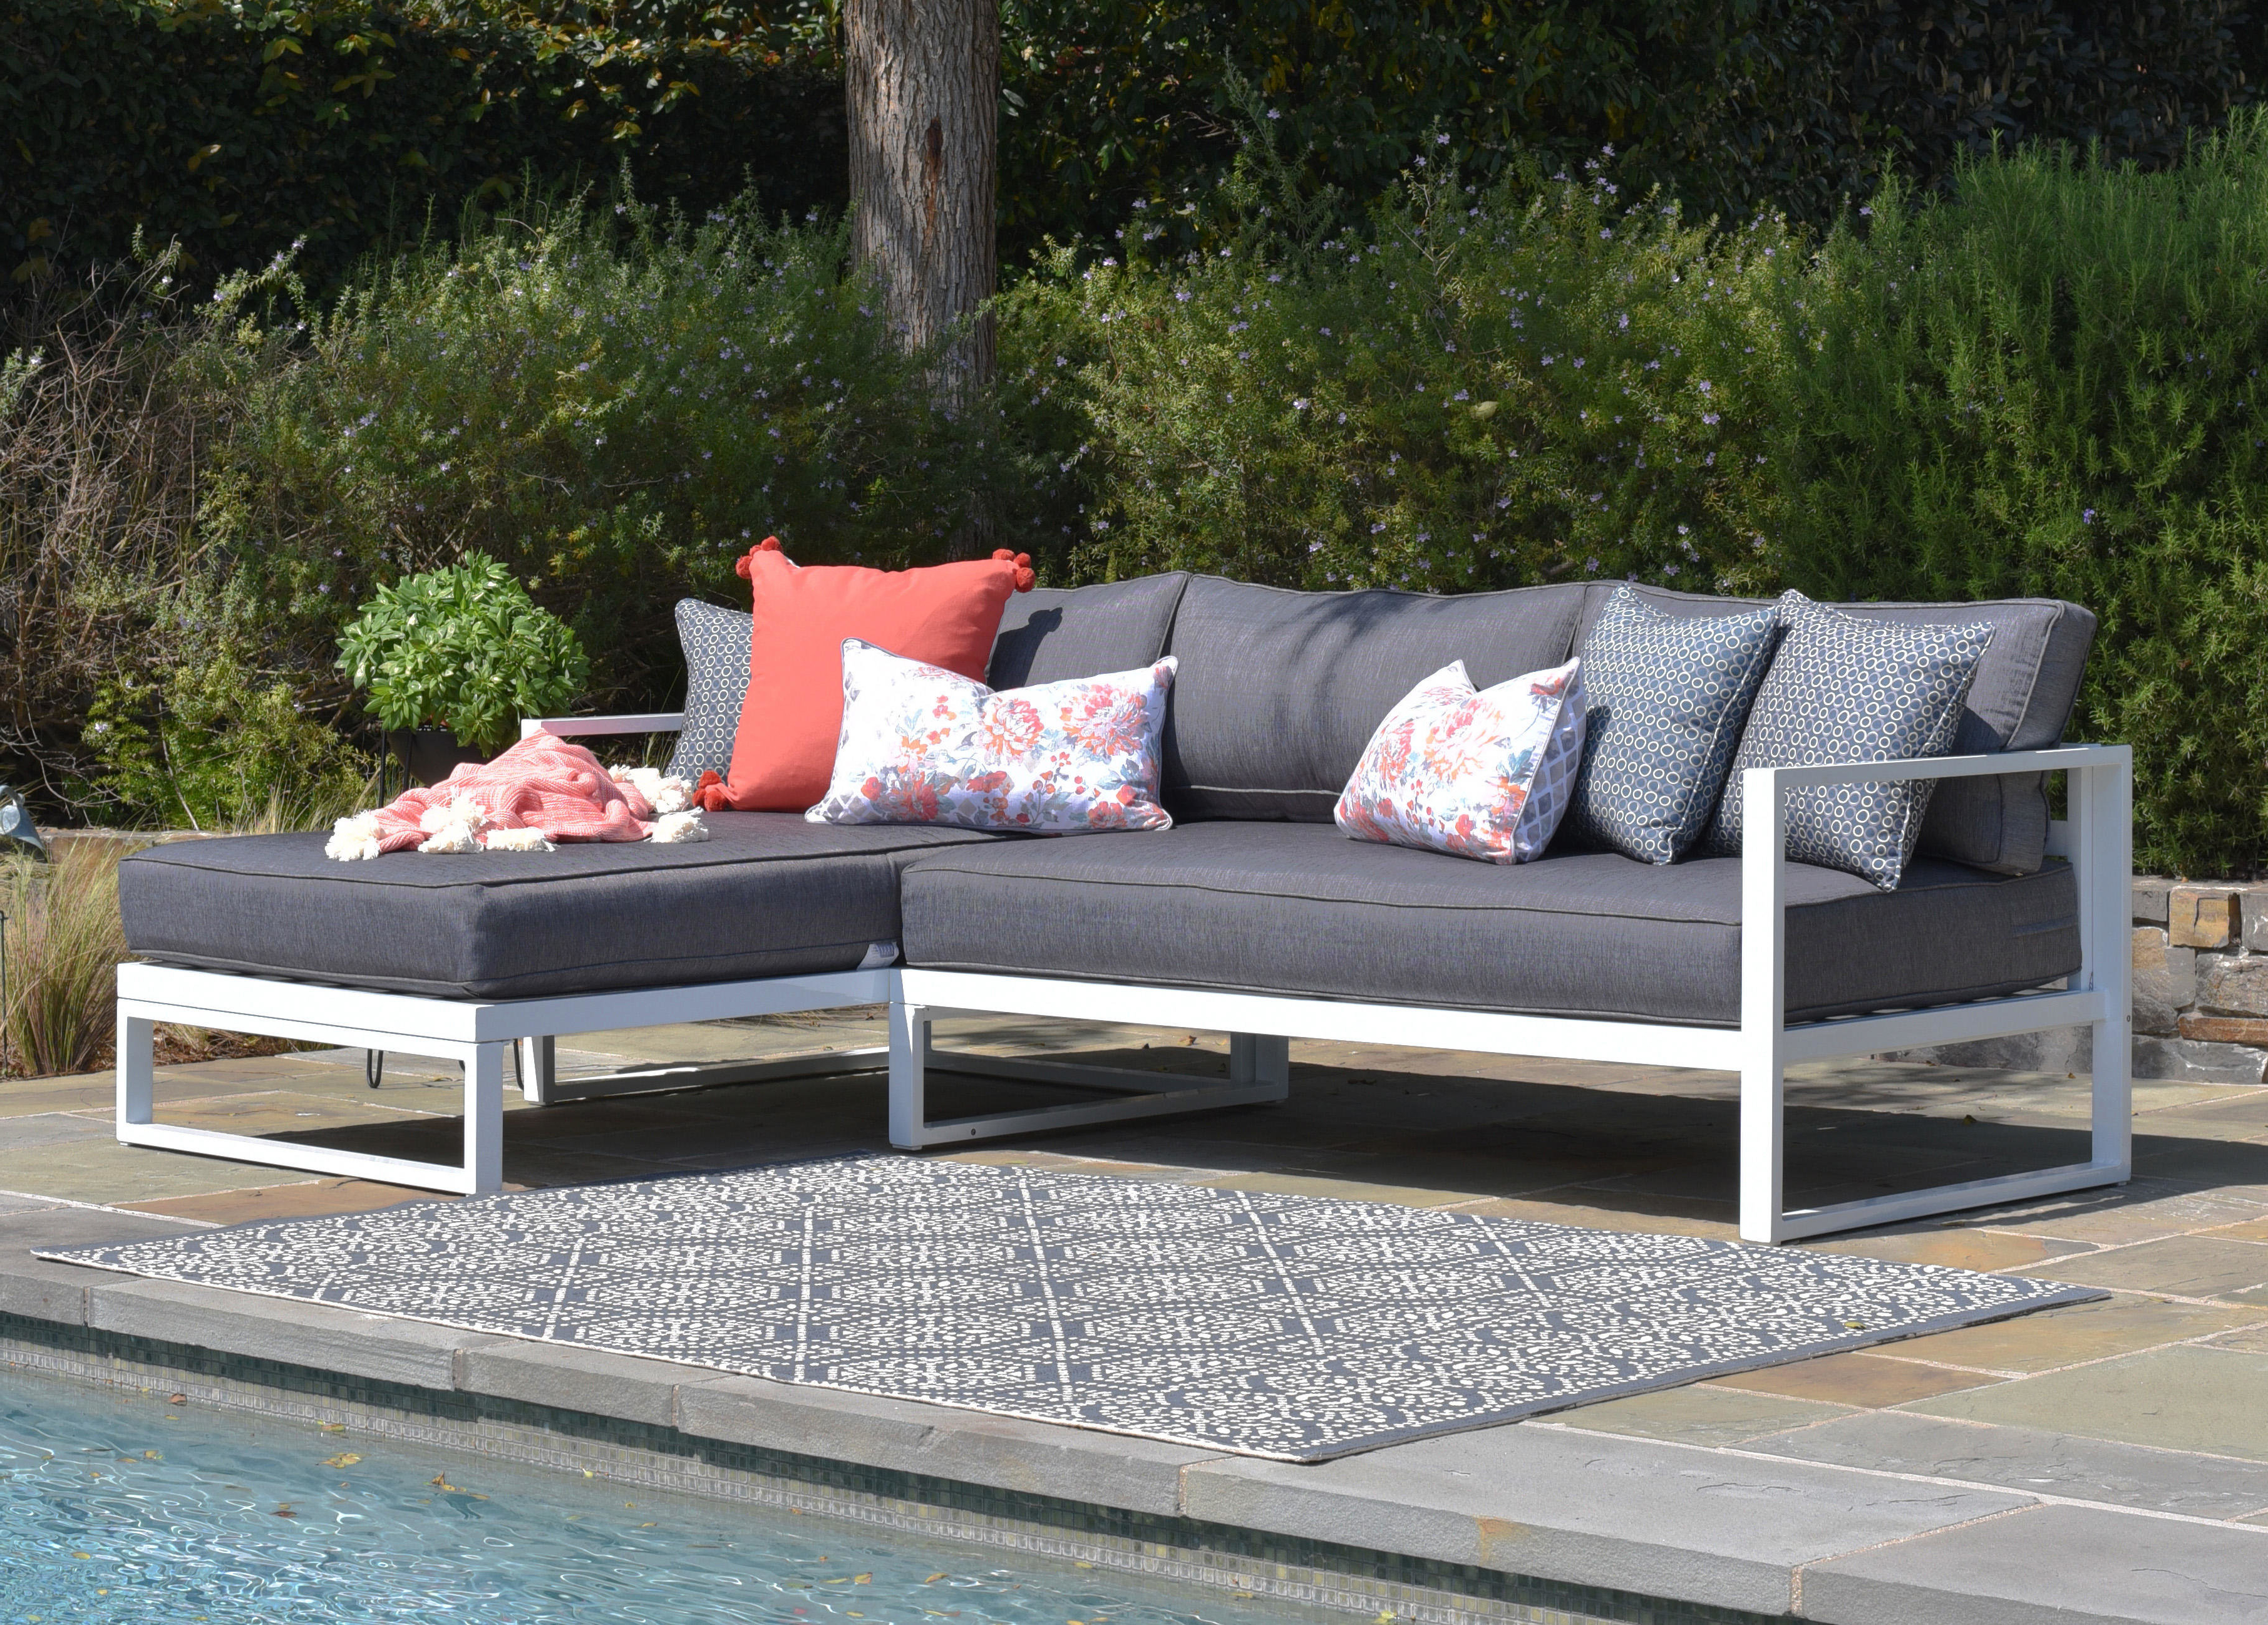 Tess Corner Living Patio Sectionals With Cushions Pertaining To Most Popular Outdoor Sectional Small Space (View 18 of 20)